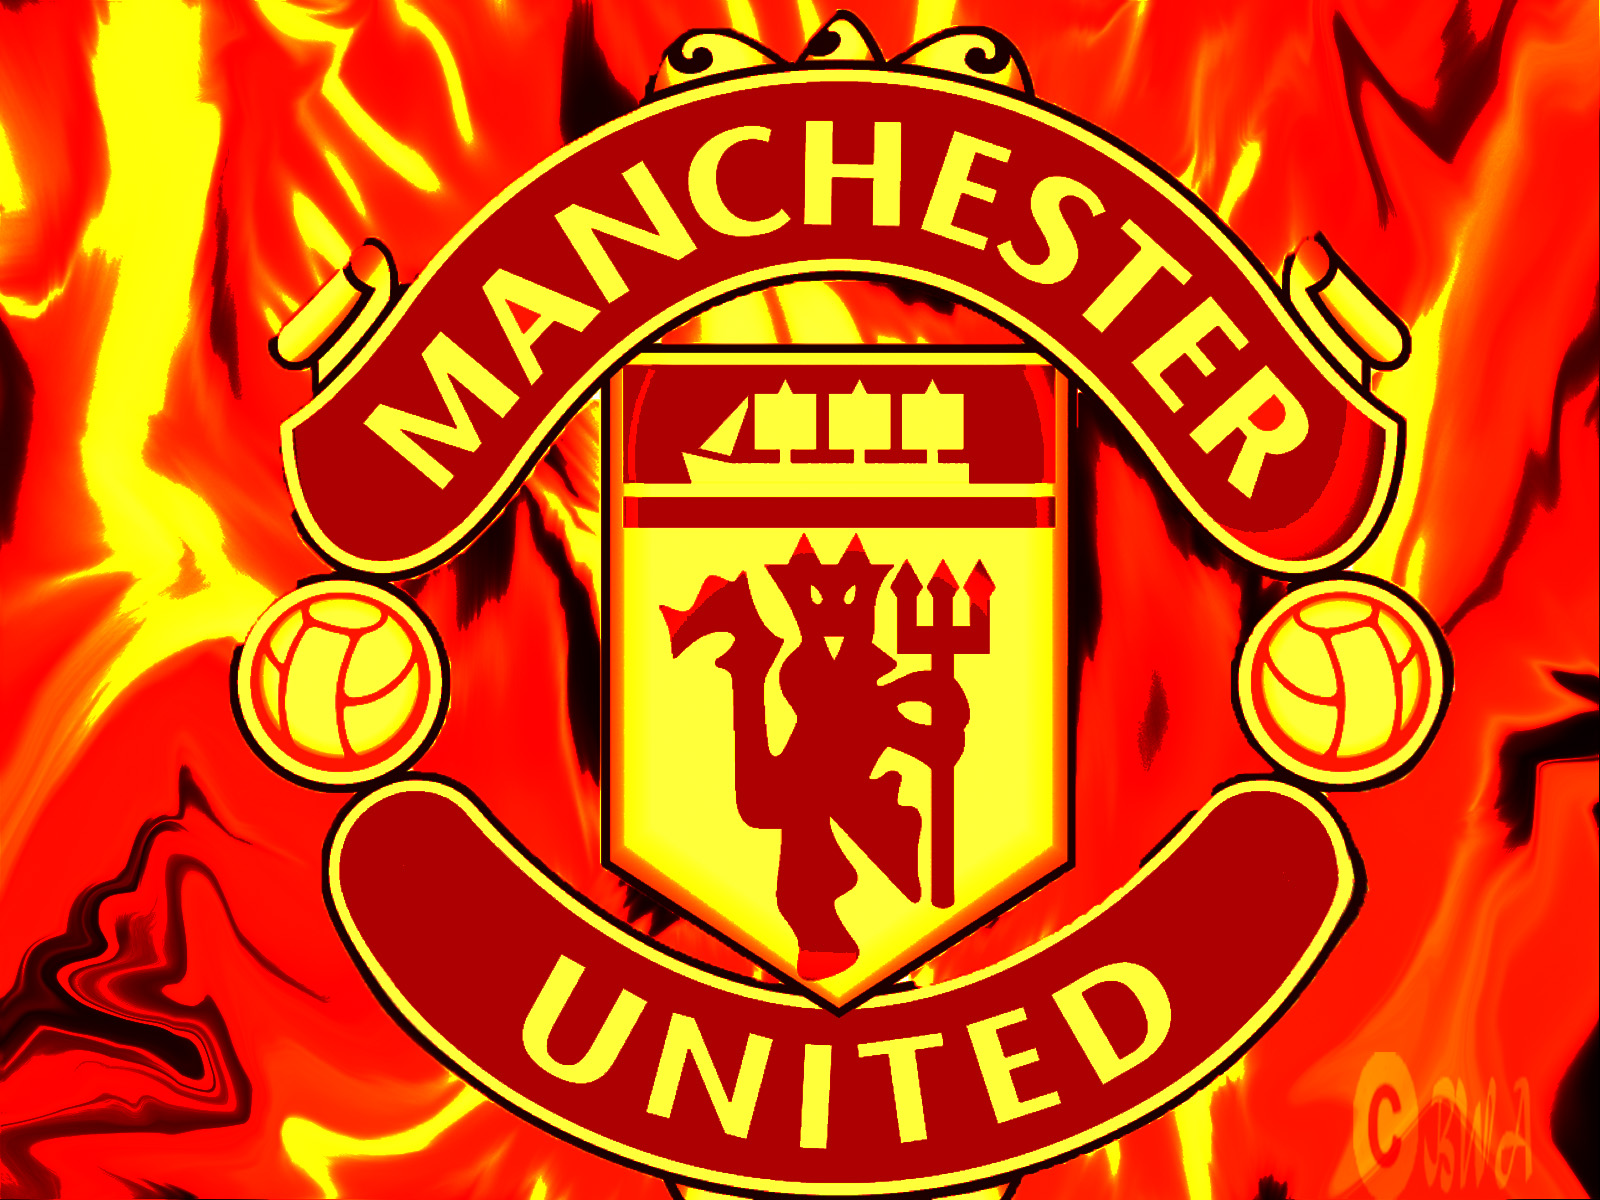 Manchester united logo 2013 wallpapers football stars world manchester united logo 2013 wallpapers voltagebd Images